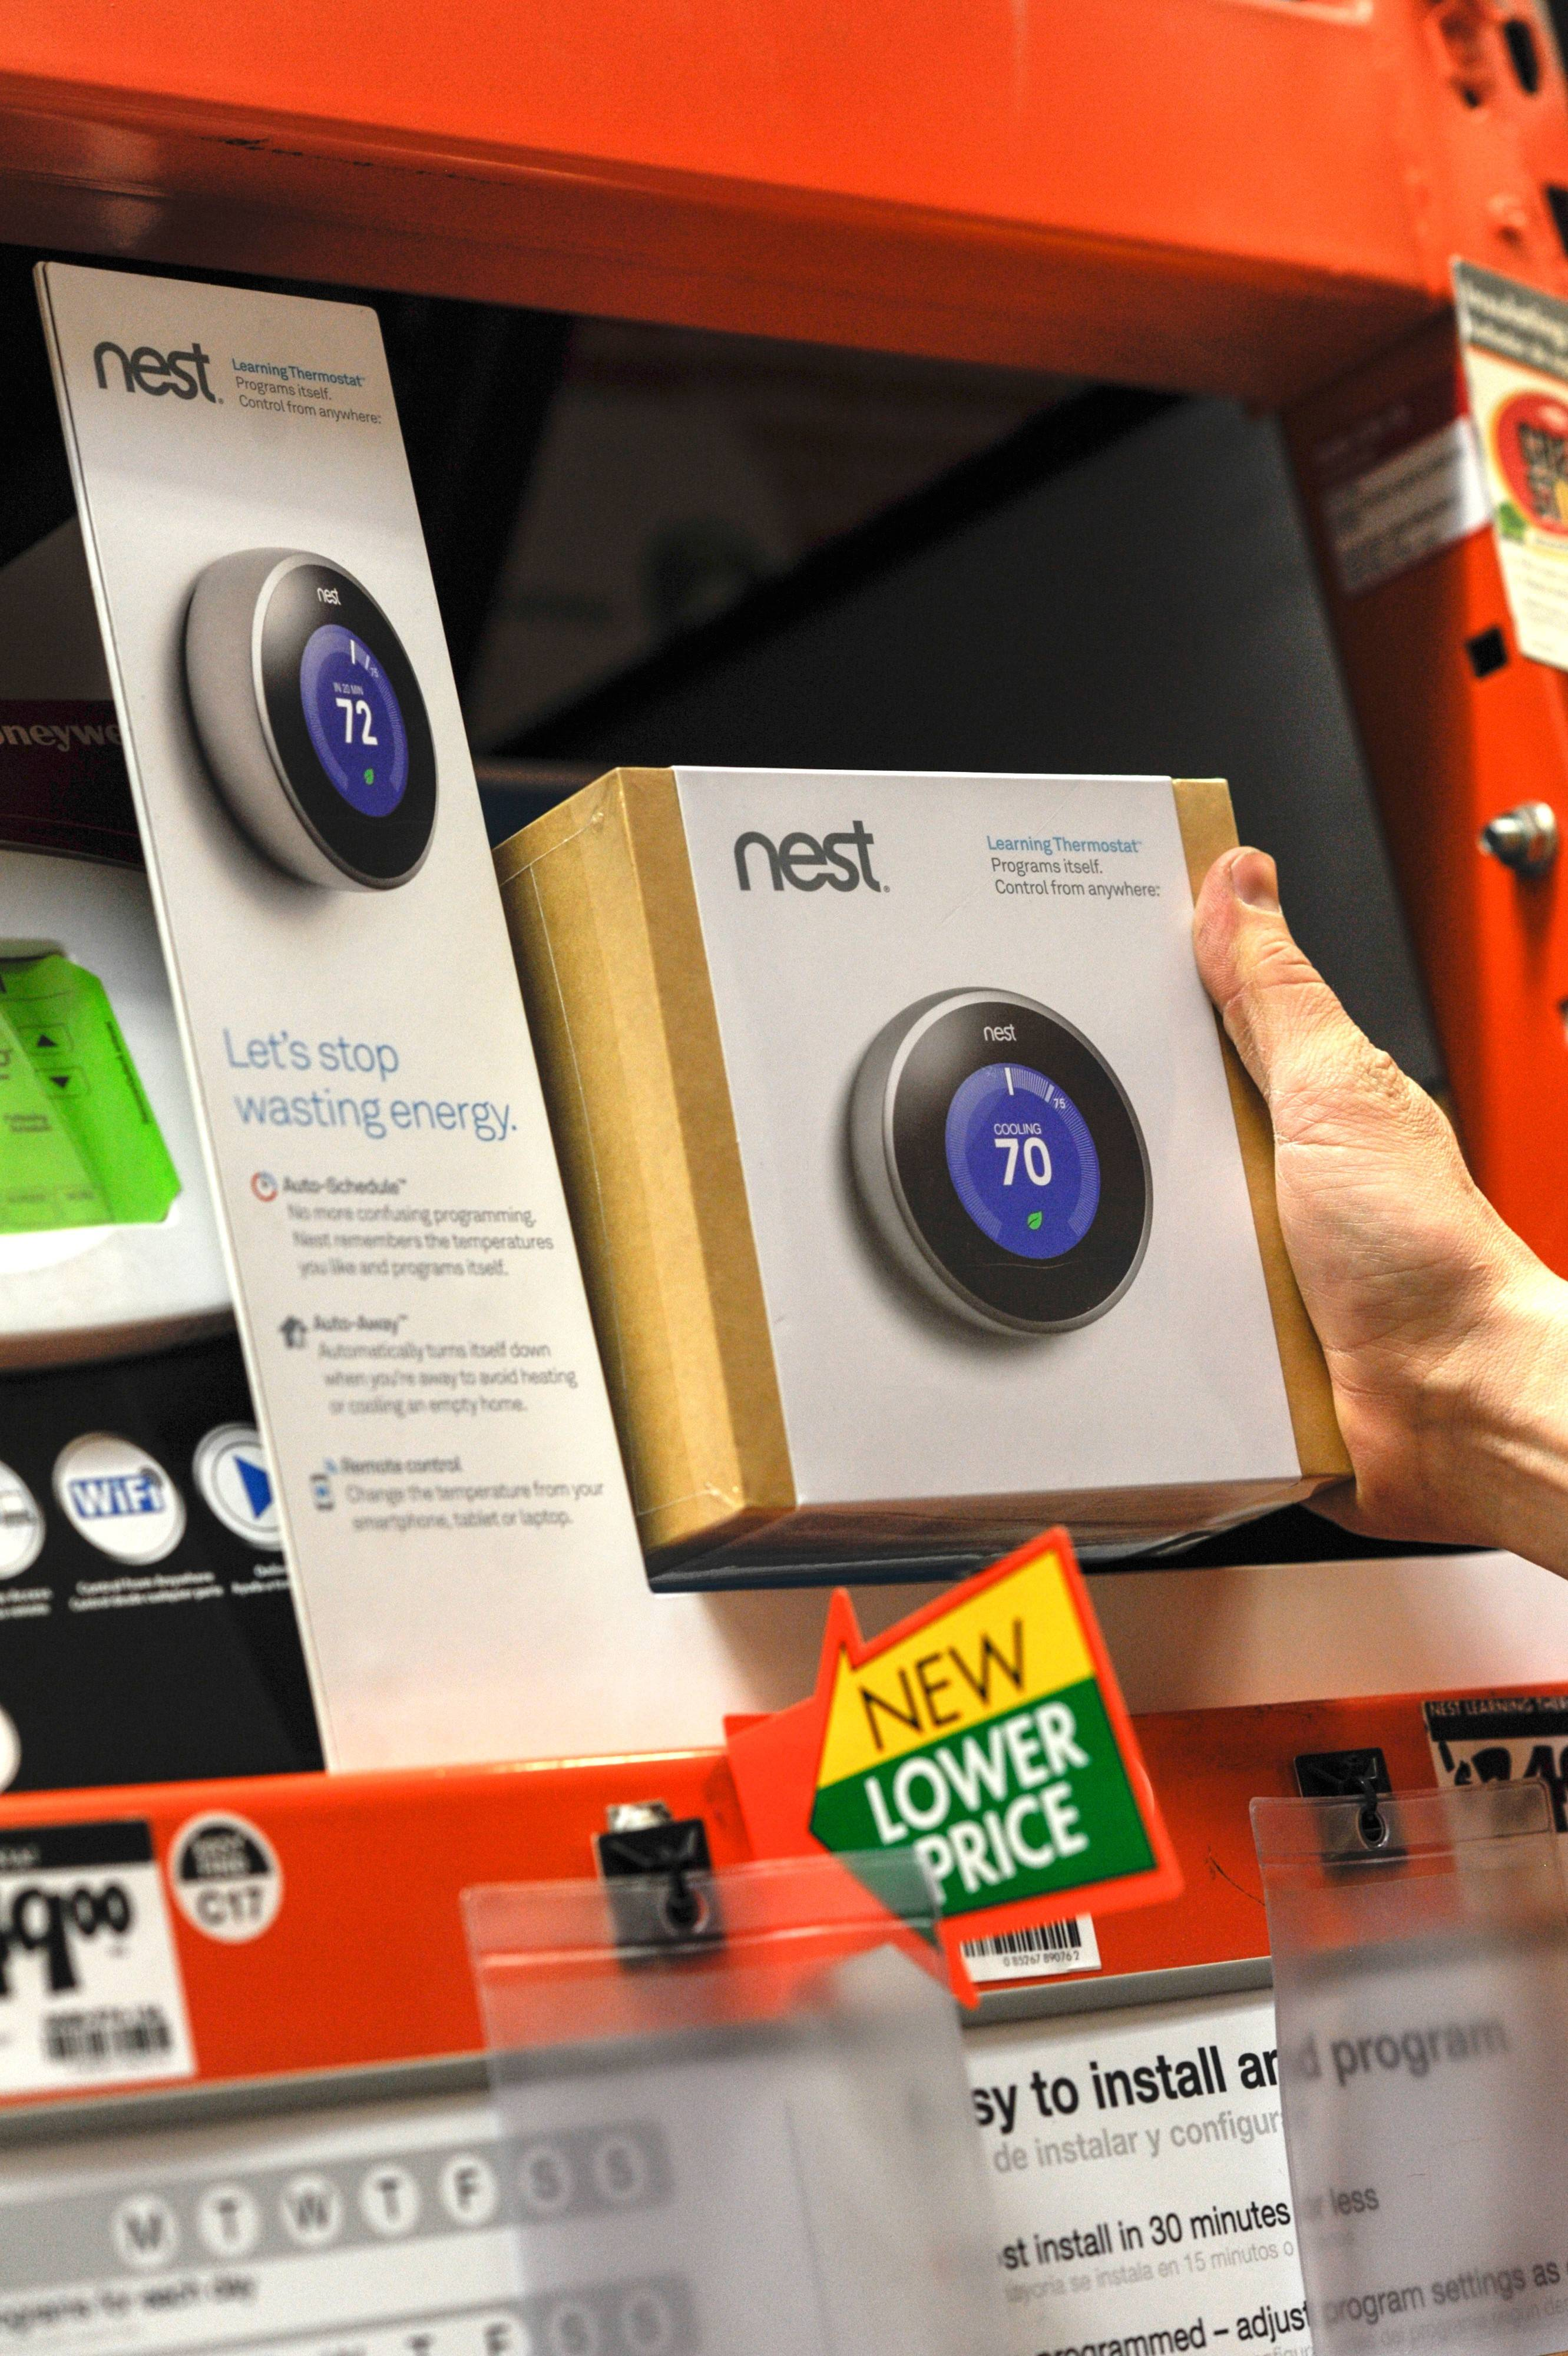 Large chains such as Home Depot and Lowe's are selling virtual tools — sensors, Wi-Fi enabled appliances and software — to help those customers monitor and control their homes from their smartphones.